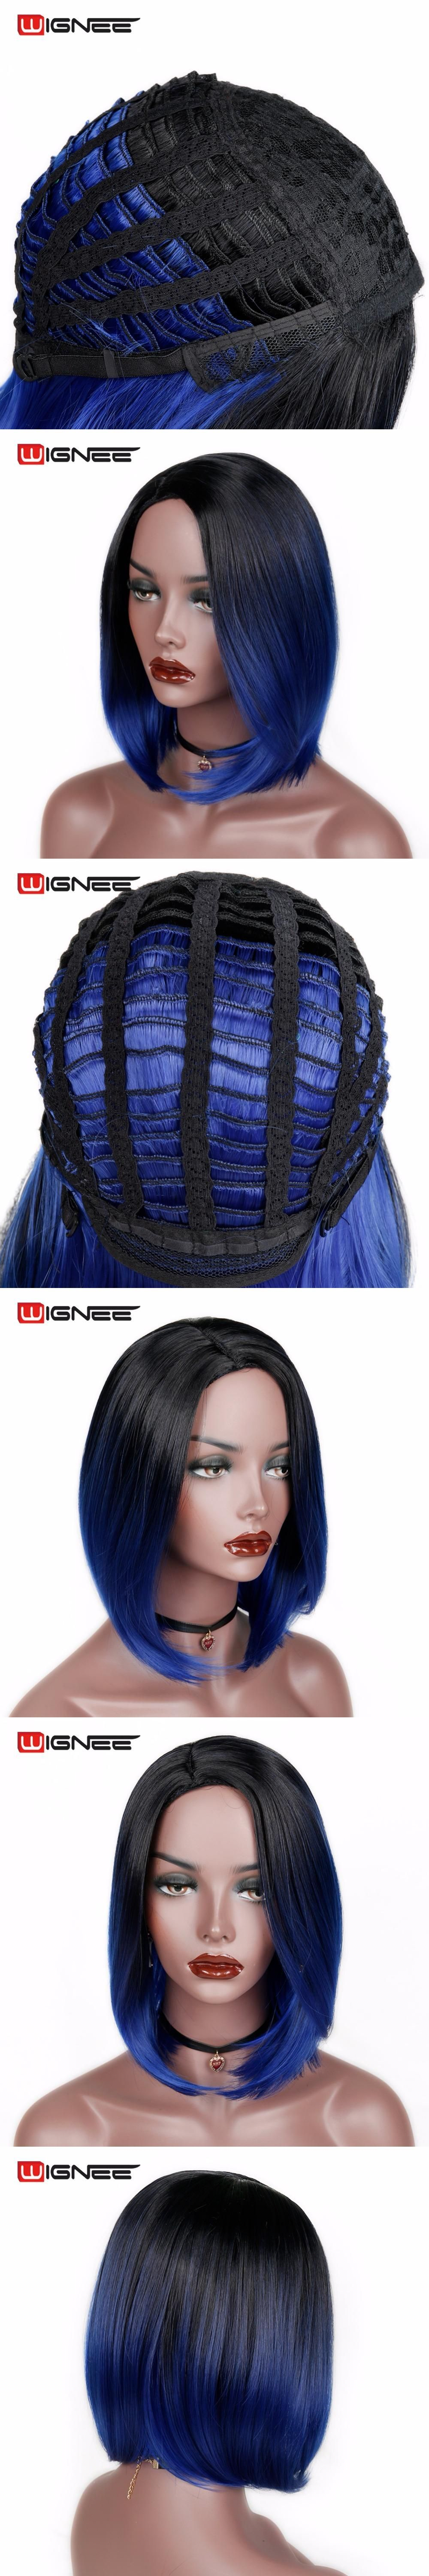 Wignee tone ombre blue color bob hair short synthetic wigs for